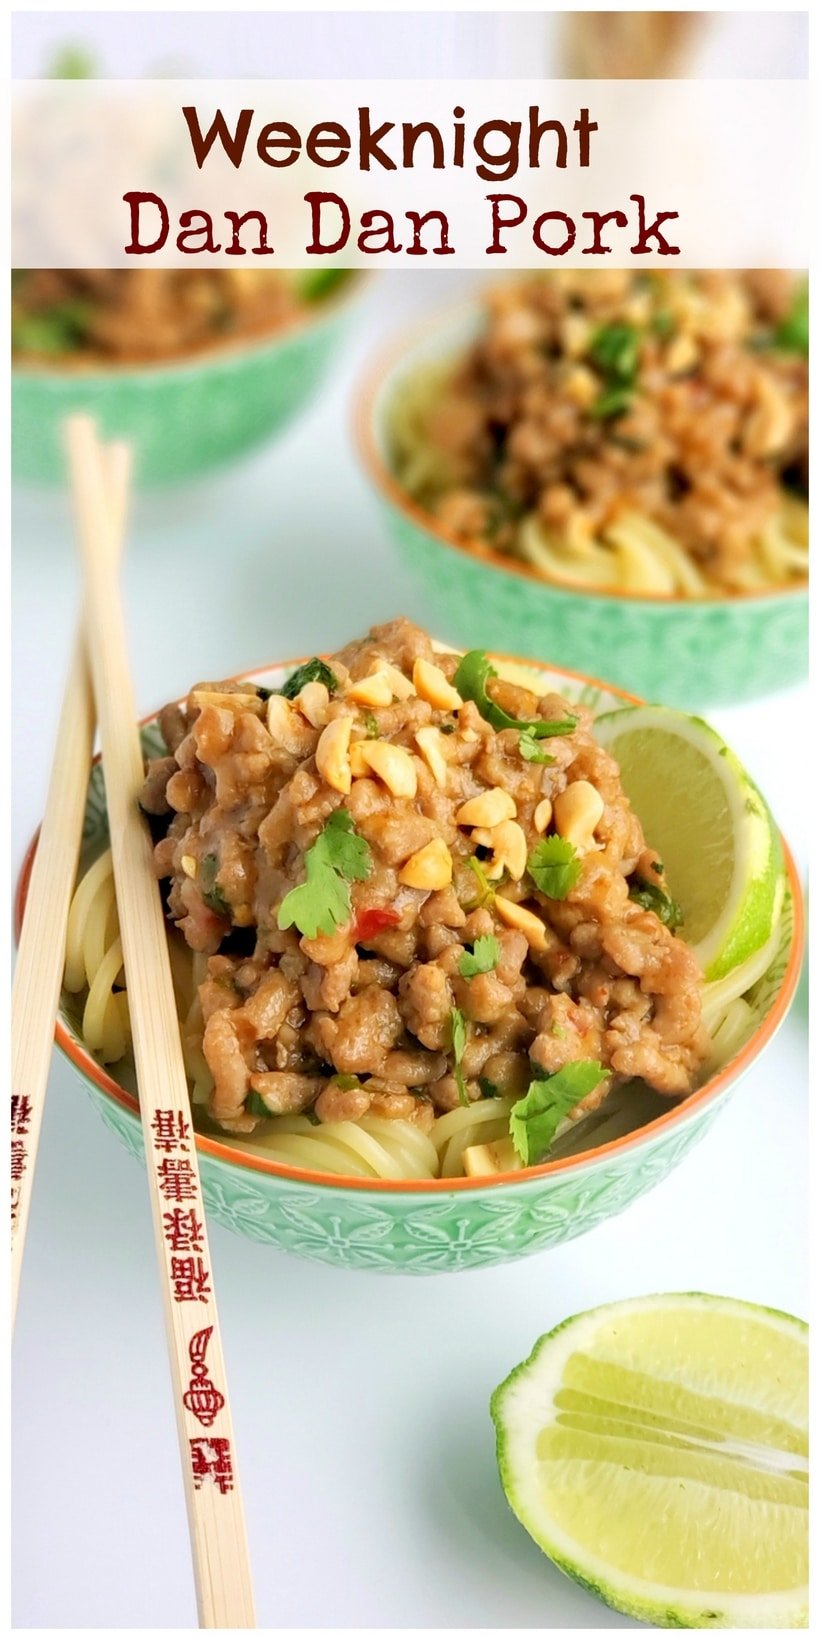 Text overlay that read weeknight dan dan pork with three bowls of noodles and chopsticks..